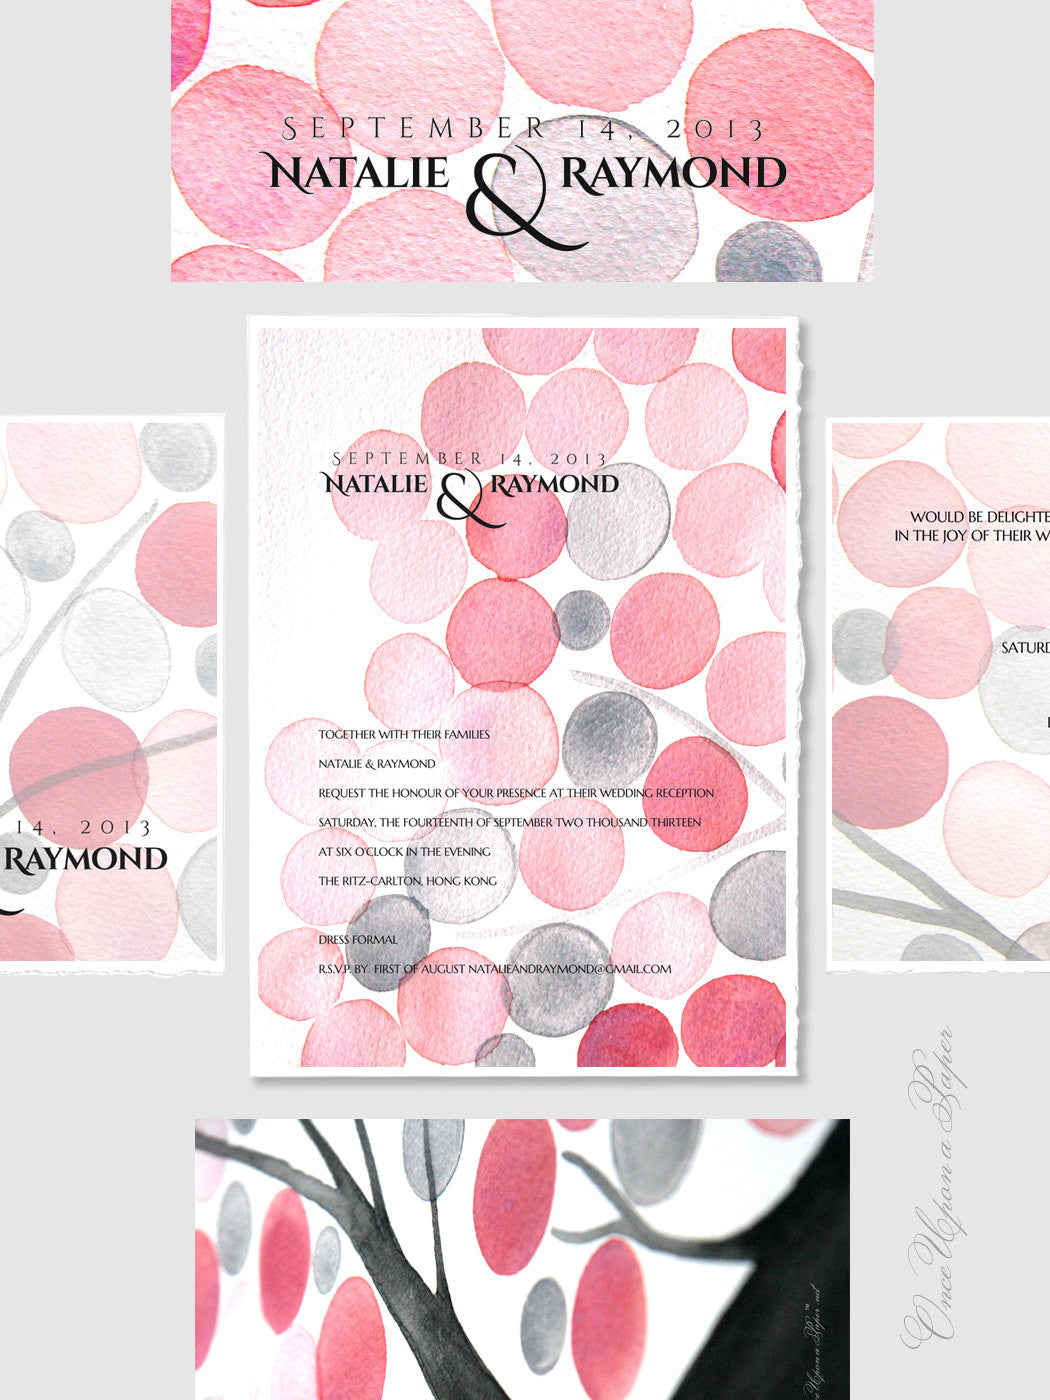 DIY Printable Wedding Invitation Design Package - Chinese red packet, Envelope, Save the Date, Wedding Invitations, RSVP